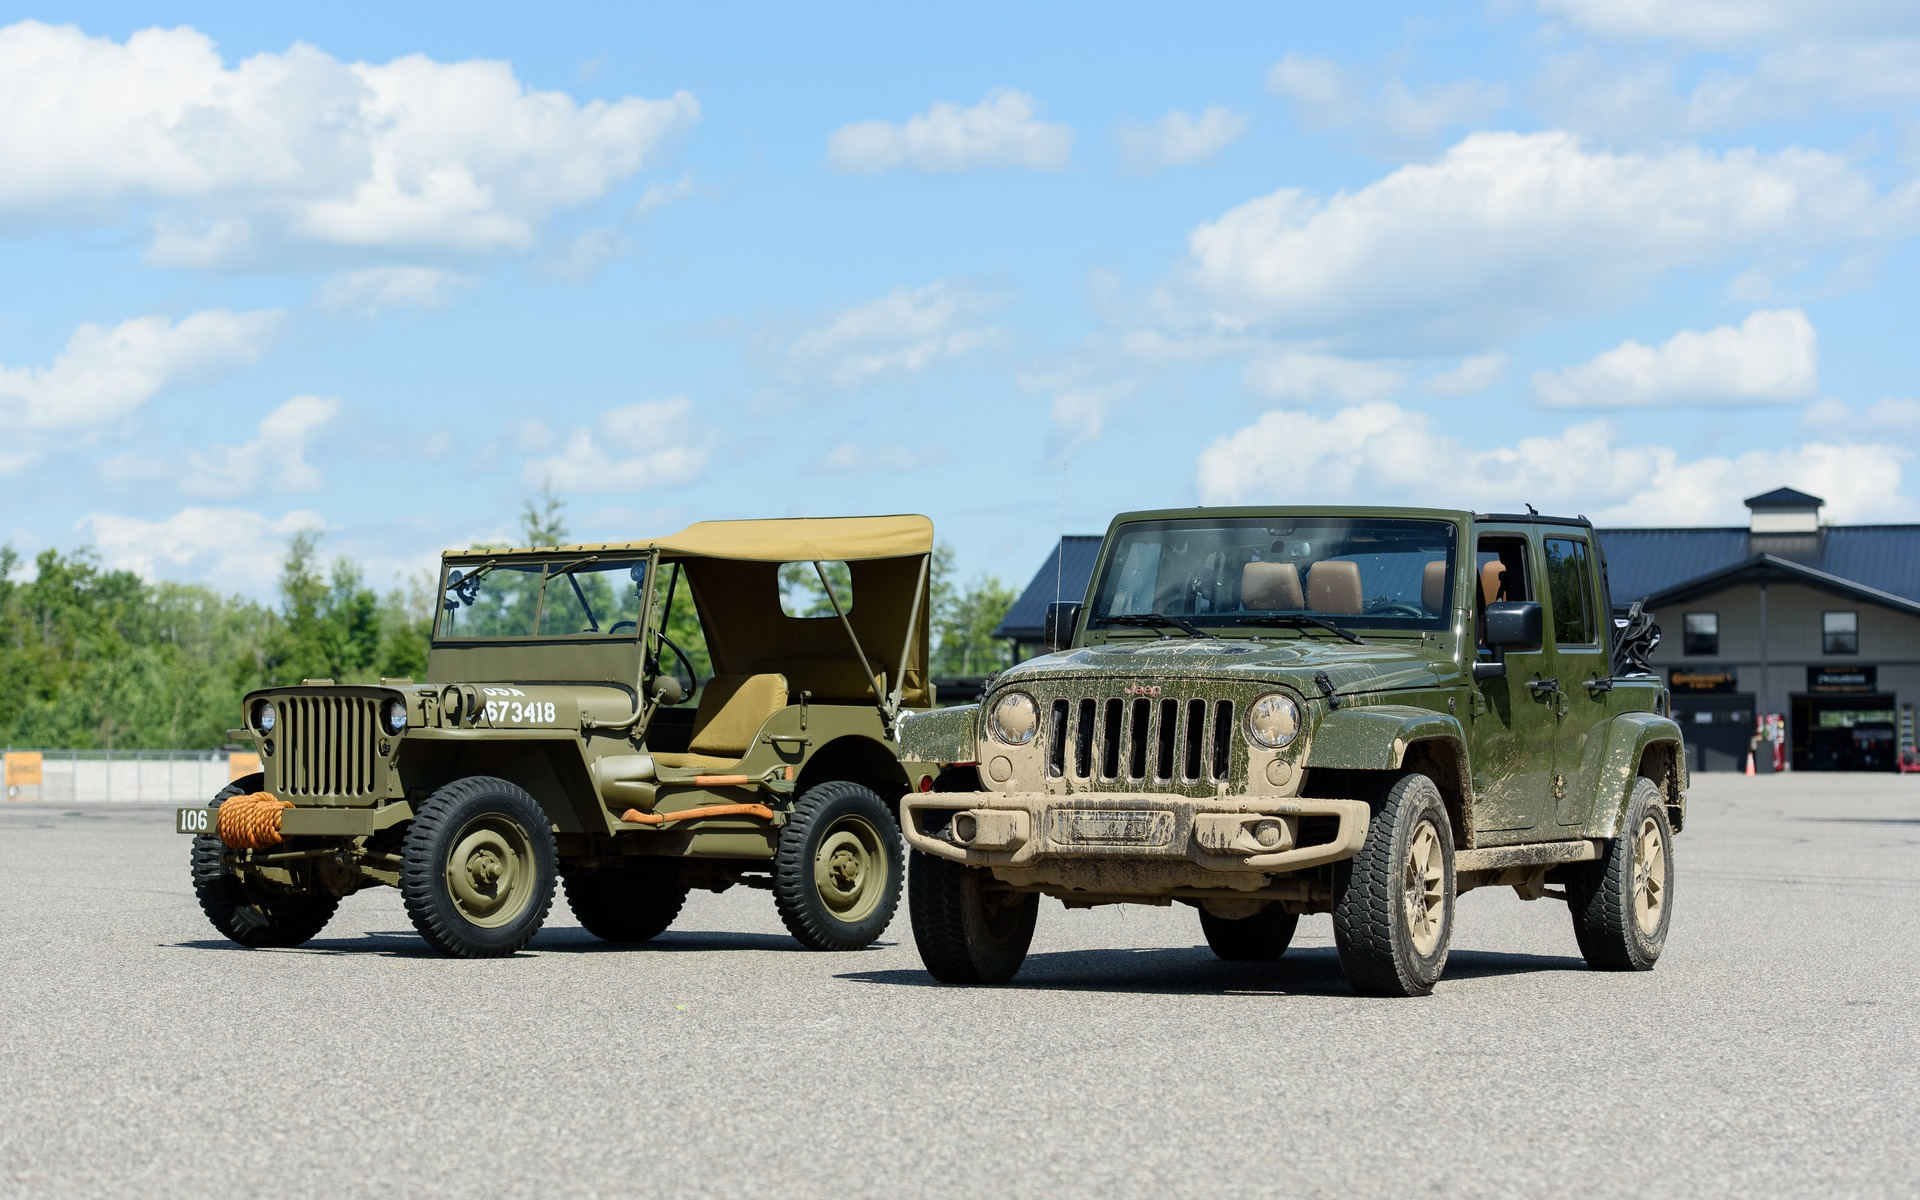 Jeep Willys 1944 et Jeep Wrangler Willys Wheeler 2016